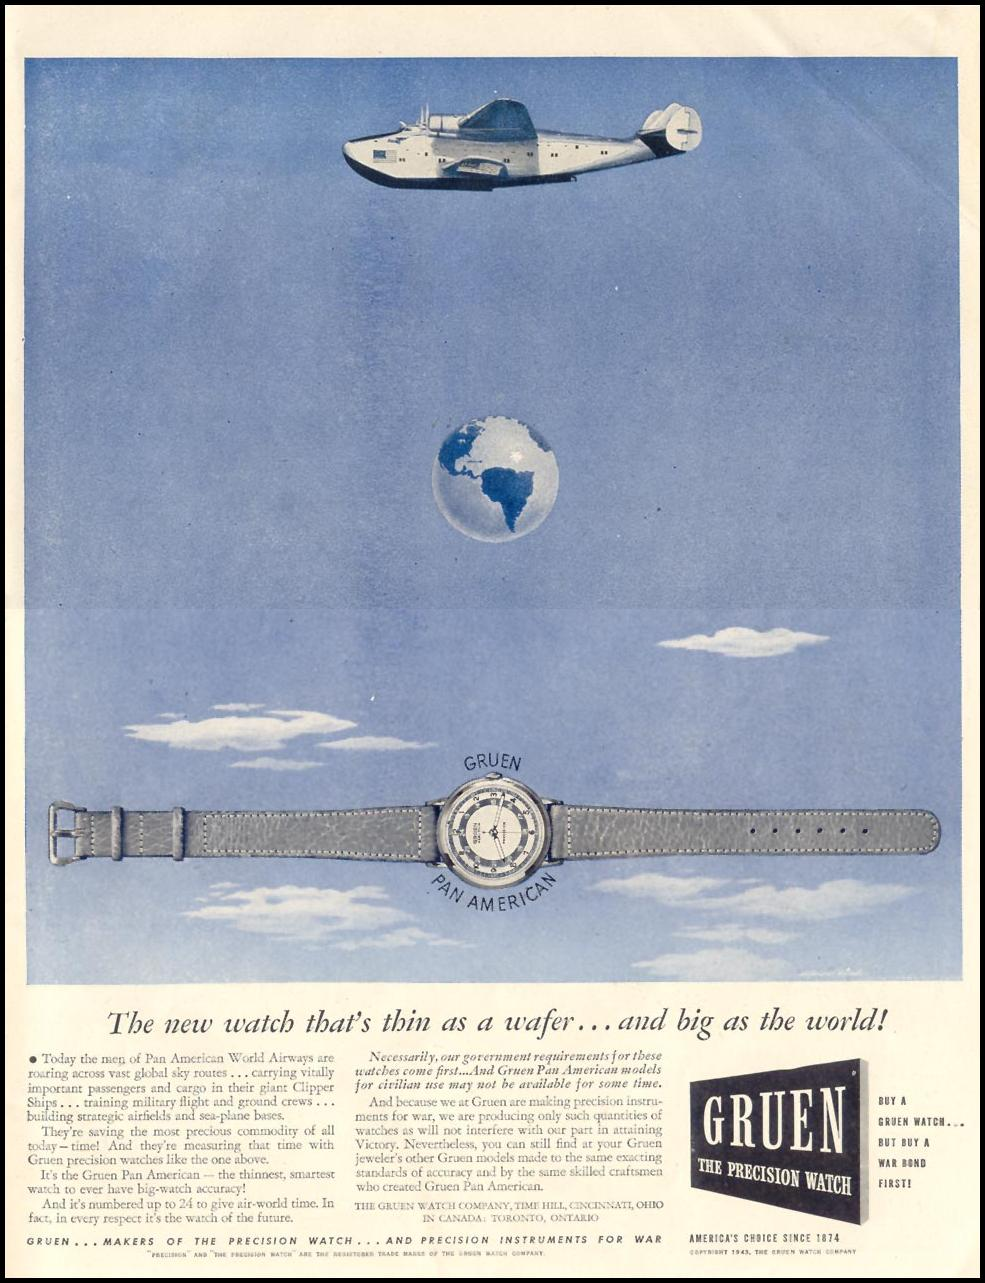 GRUEN PAN AMERICAN WATCHES LIFE 11/08/1943 p. 7